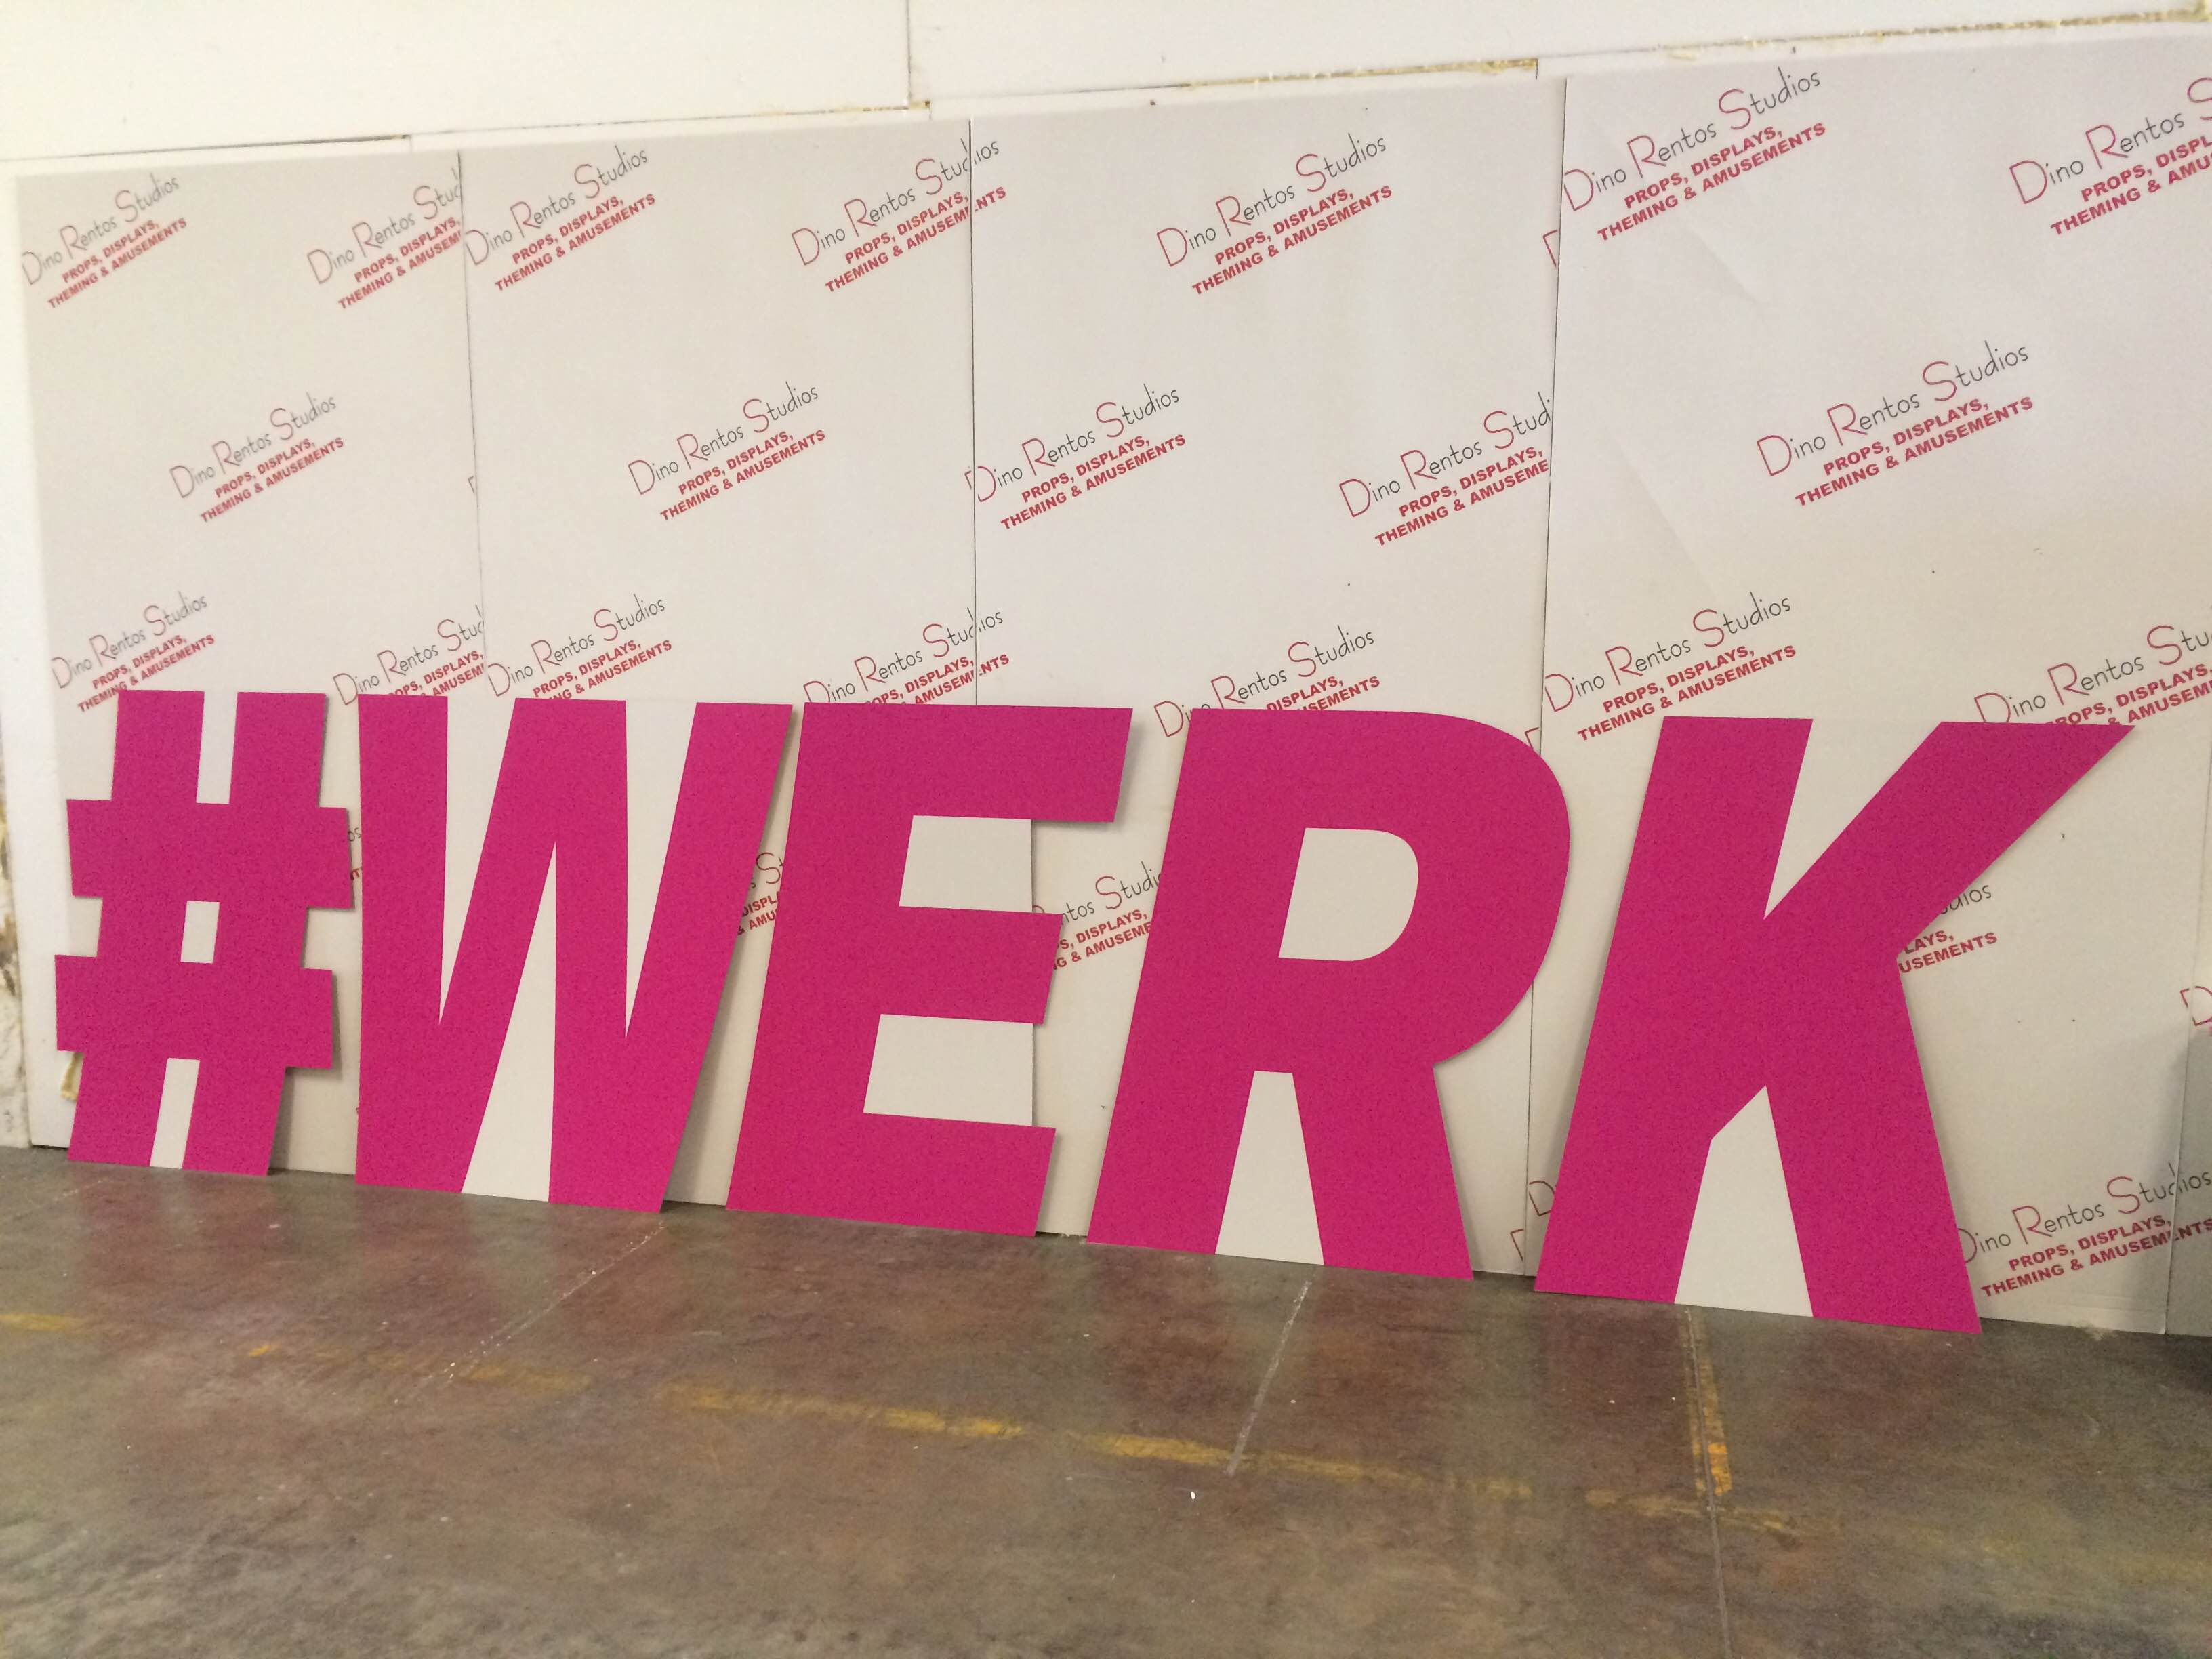 custom cardboard standup cutout letters for your Twitter Hashtag for corporate events